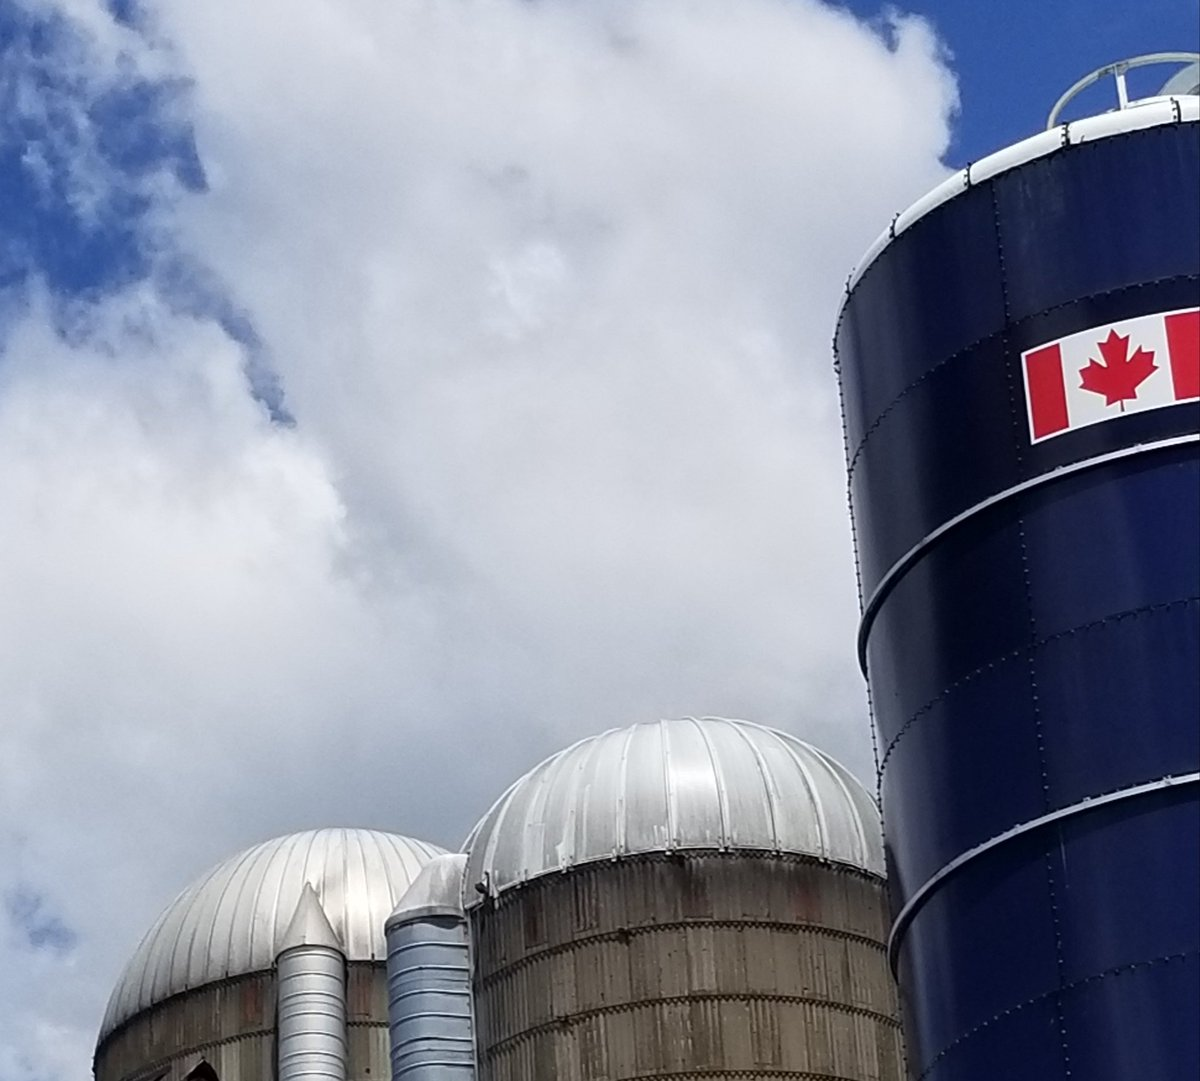 Proudly Canadian. Ag Proud. Happy Canada Day folks! #agintheeast #AGcommunity https://t.co/PxFQXapqOs